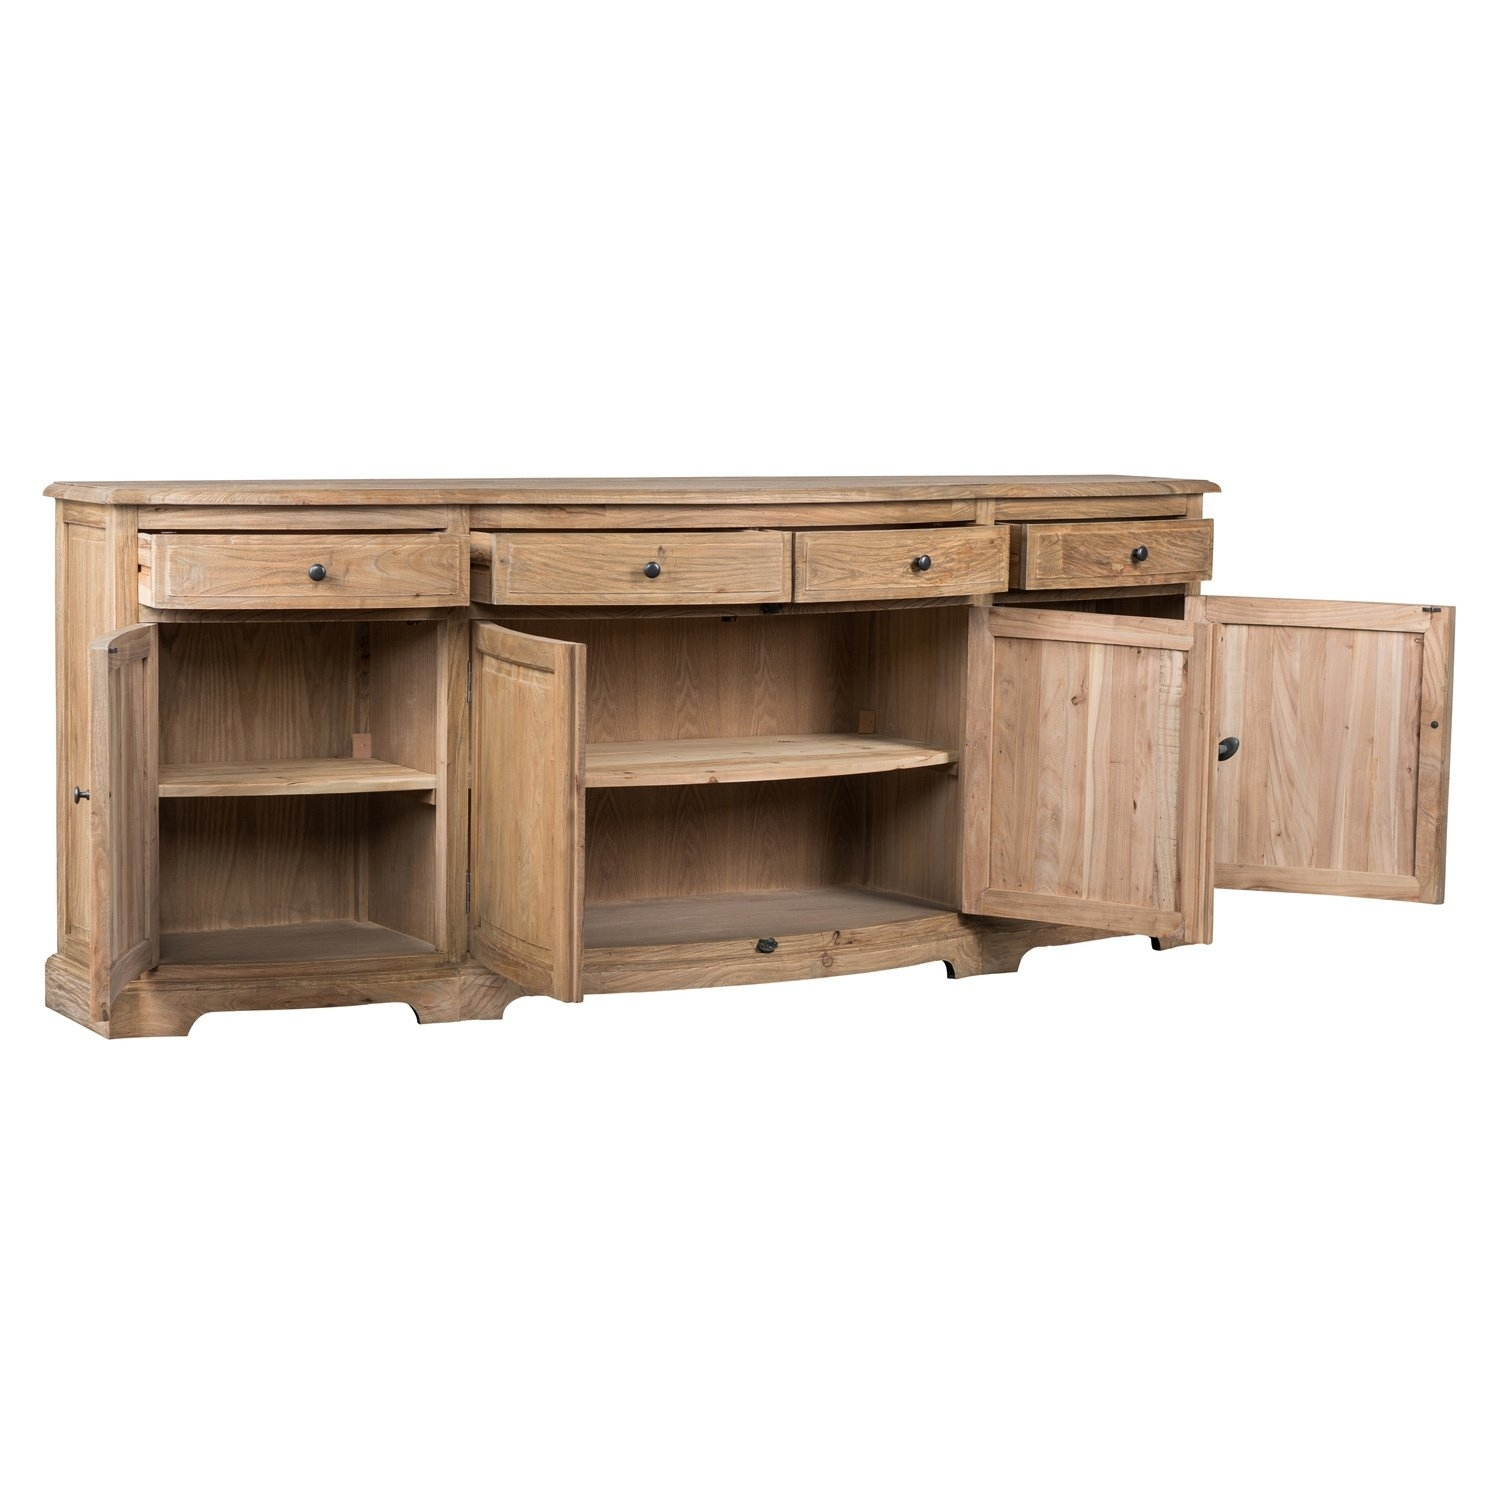 Shop Benjamin Reclaimed Wood Natural 87-Inch Sideboardkosas Home with Natural Oak Wood 78 Inch Sideboards (Image 19 of 30)